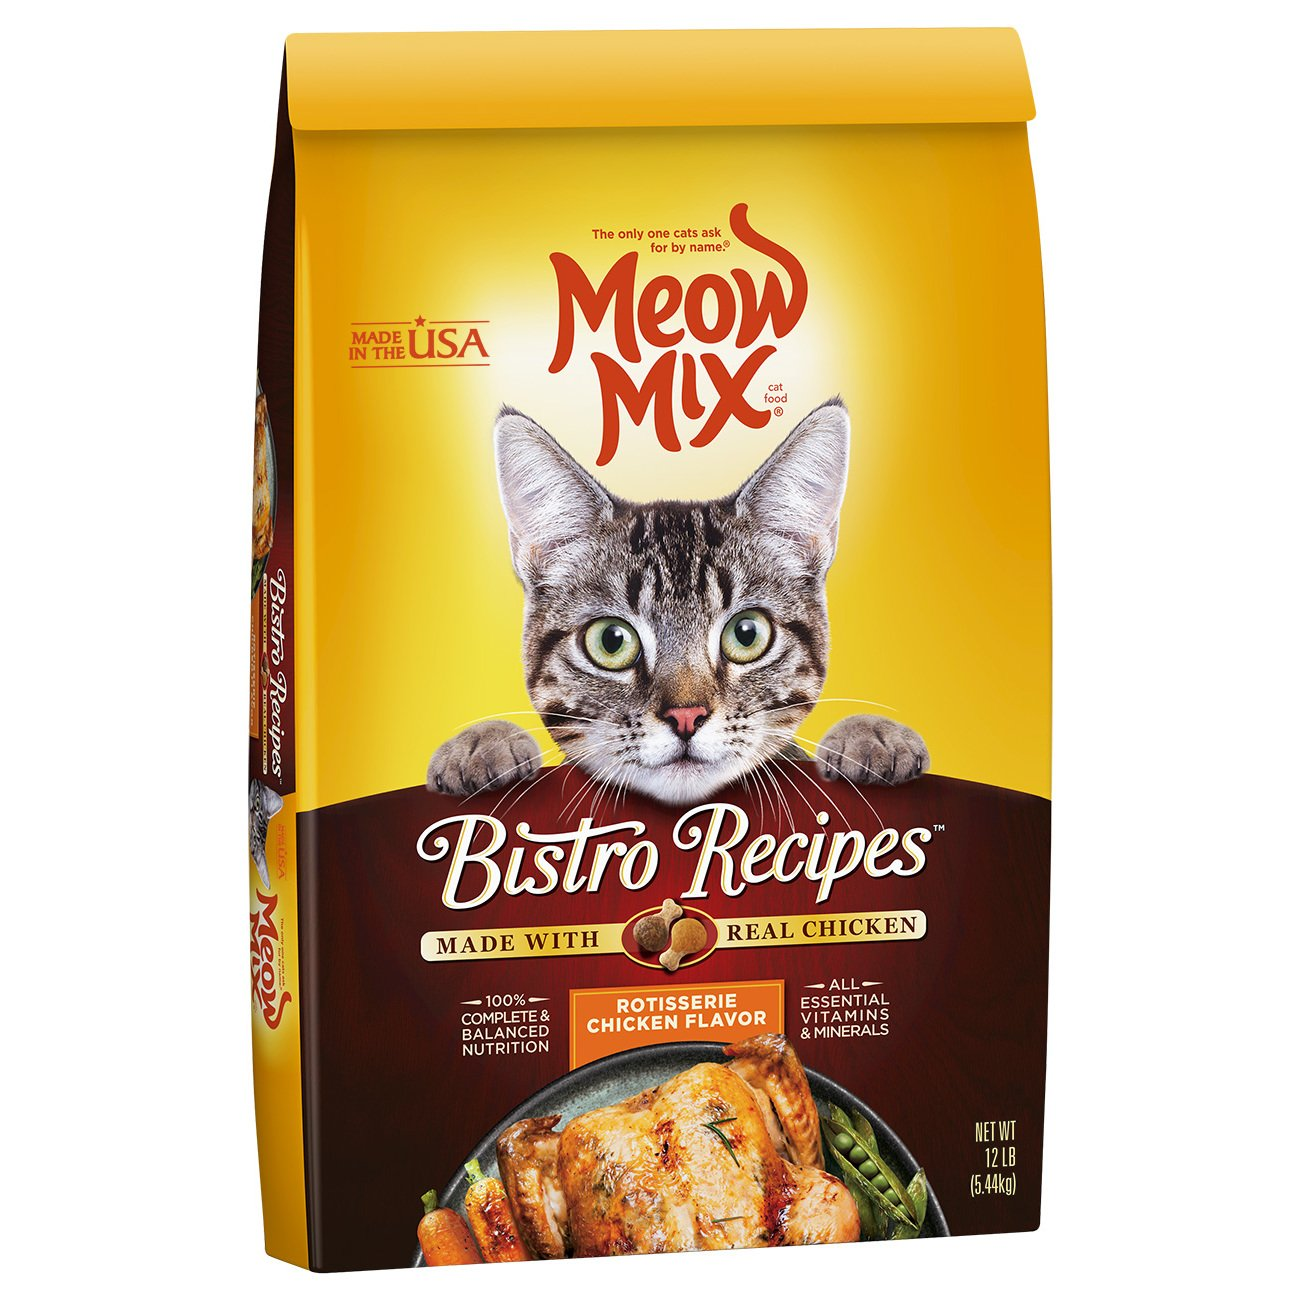 Meow Mix Bistro Recipes Rotisserie Chicken Flavor Dry Cat Food - 12 lb